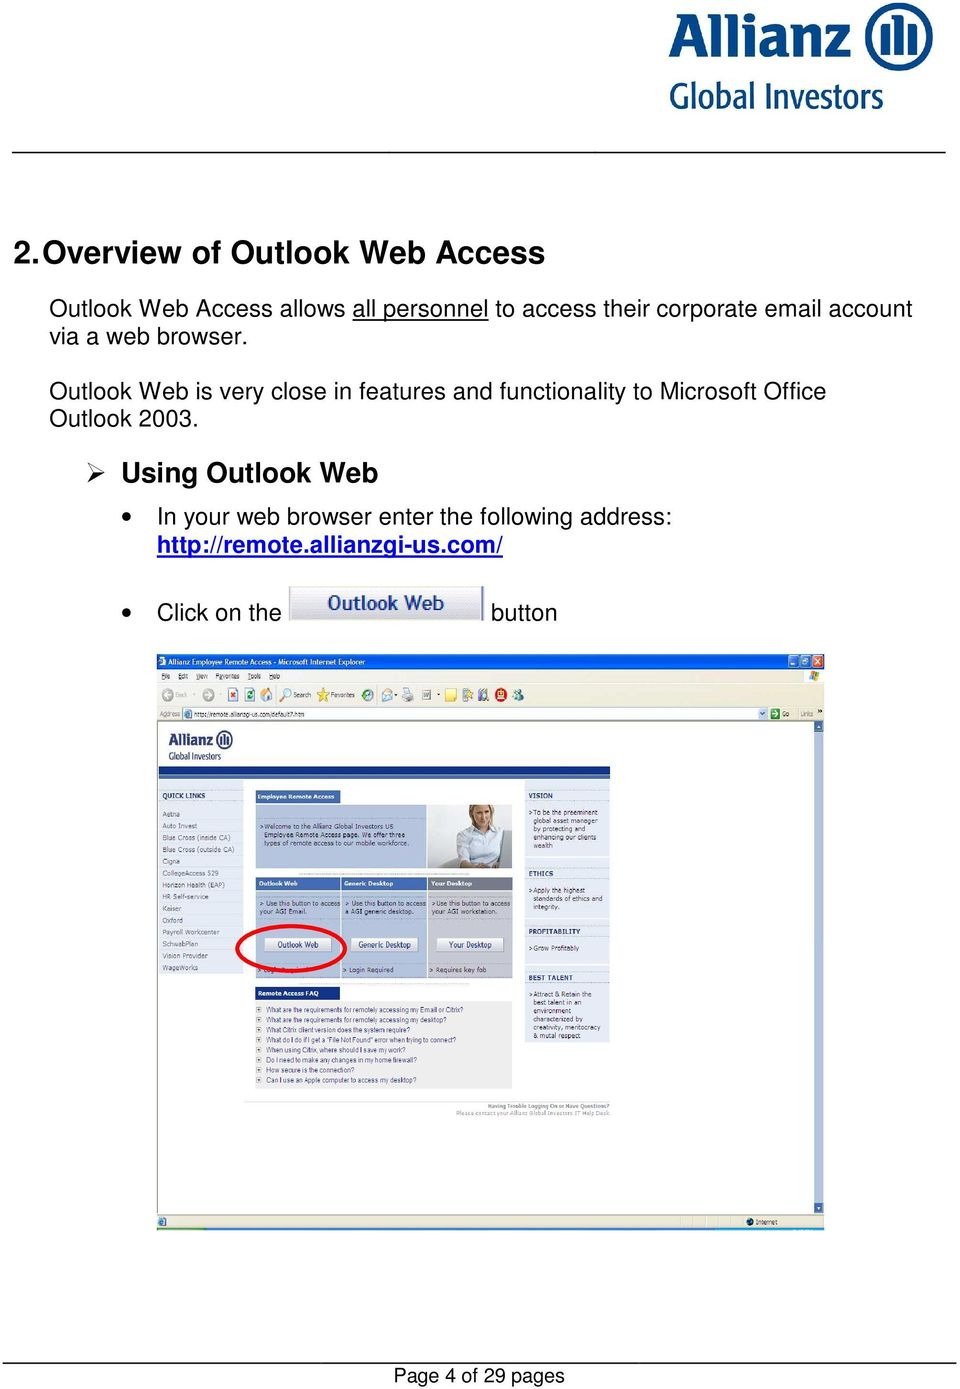 Outlook Web is very close in features and functionality to Microsoft Office Outlook 2003.